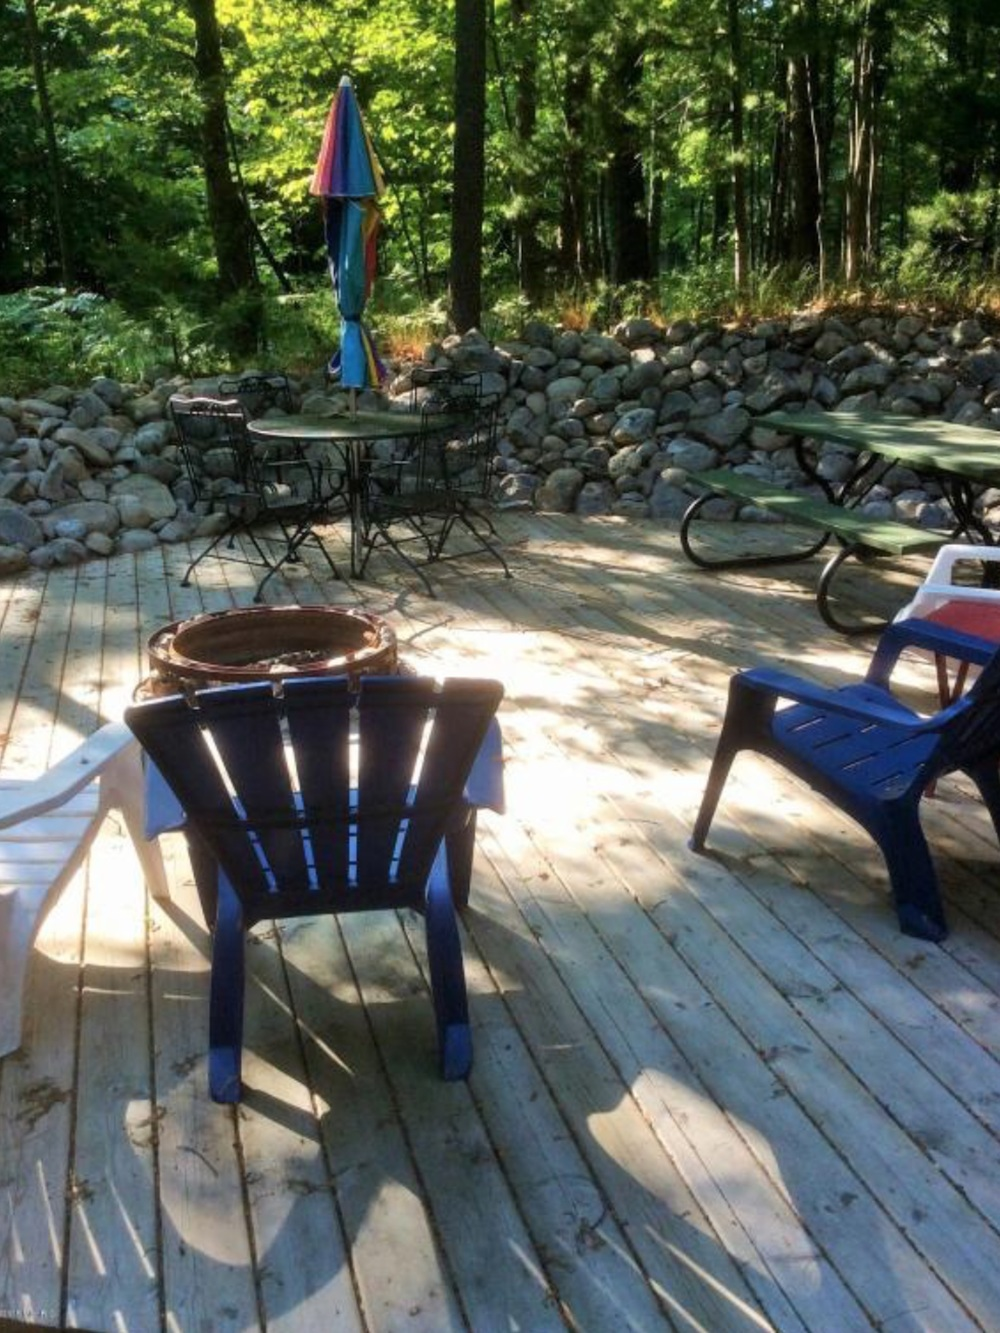 Pentwater Michigan Vacation Rental Fire pit.jpg